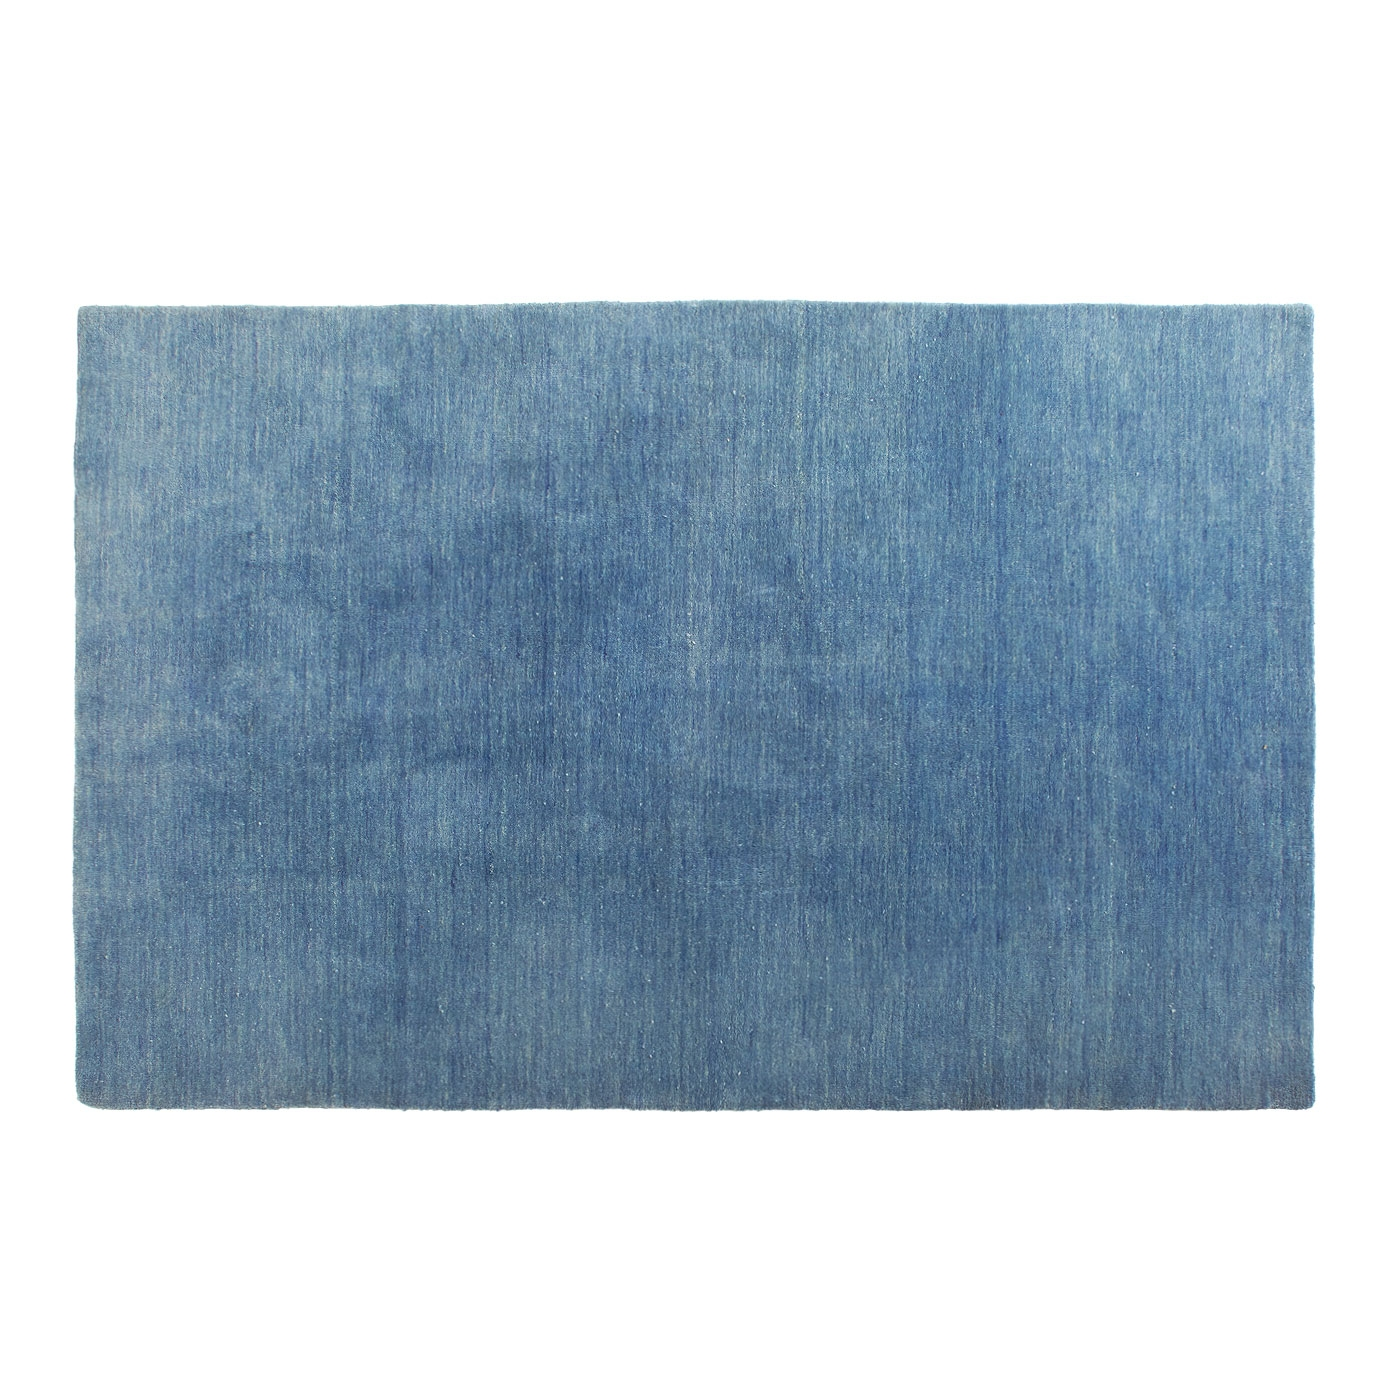 Hotel 3 X 5 Rug Hand Knotted Wool Rug Blu Dot With Wool Blue Rugs (Image 9 of 15)